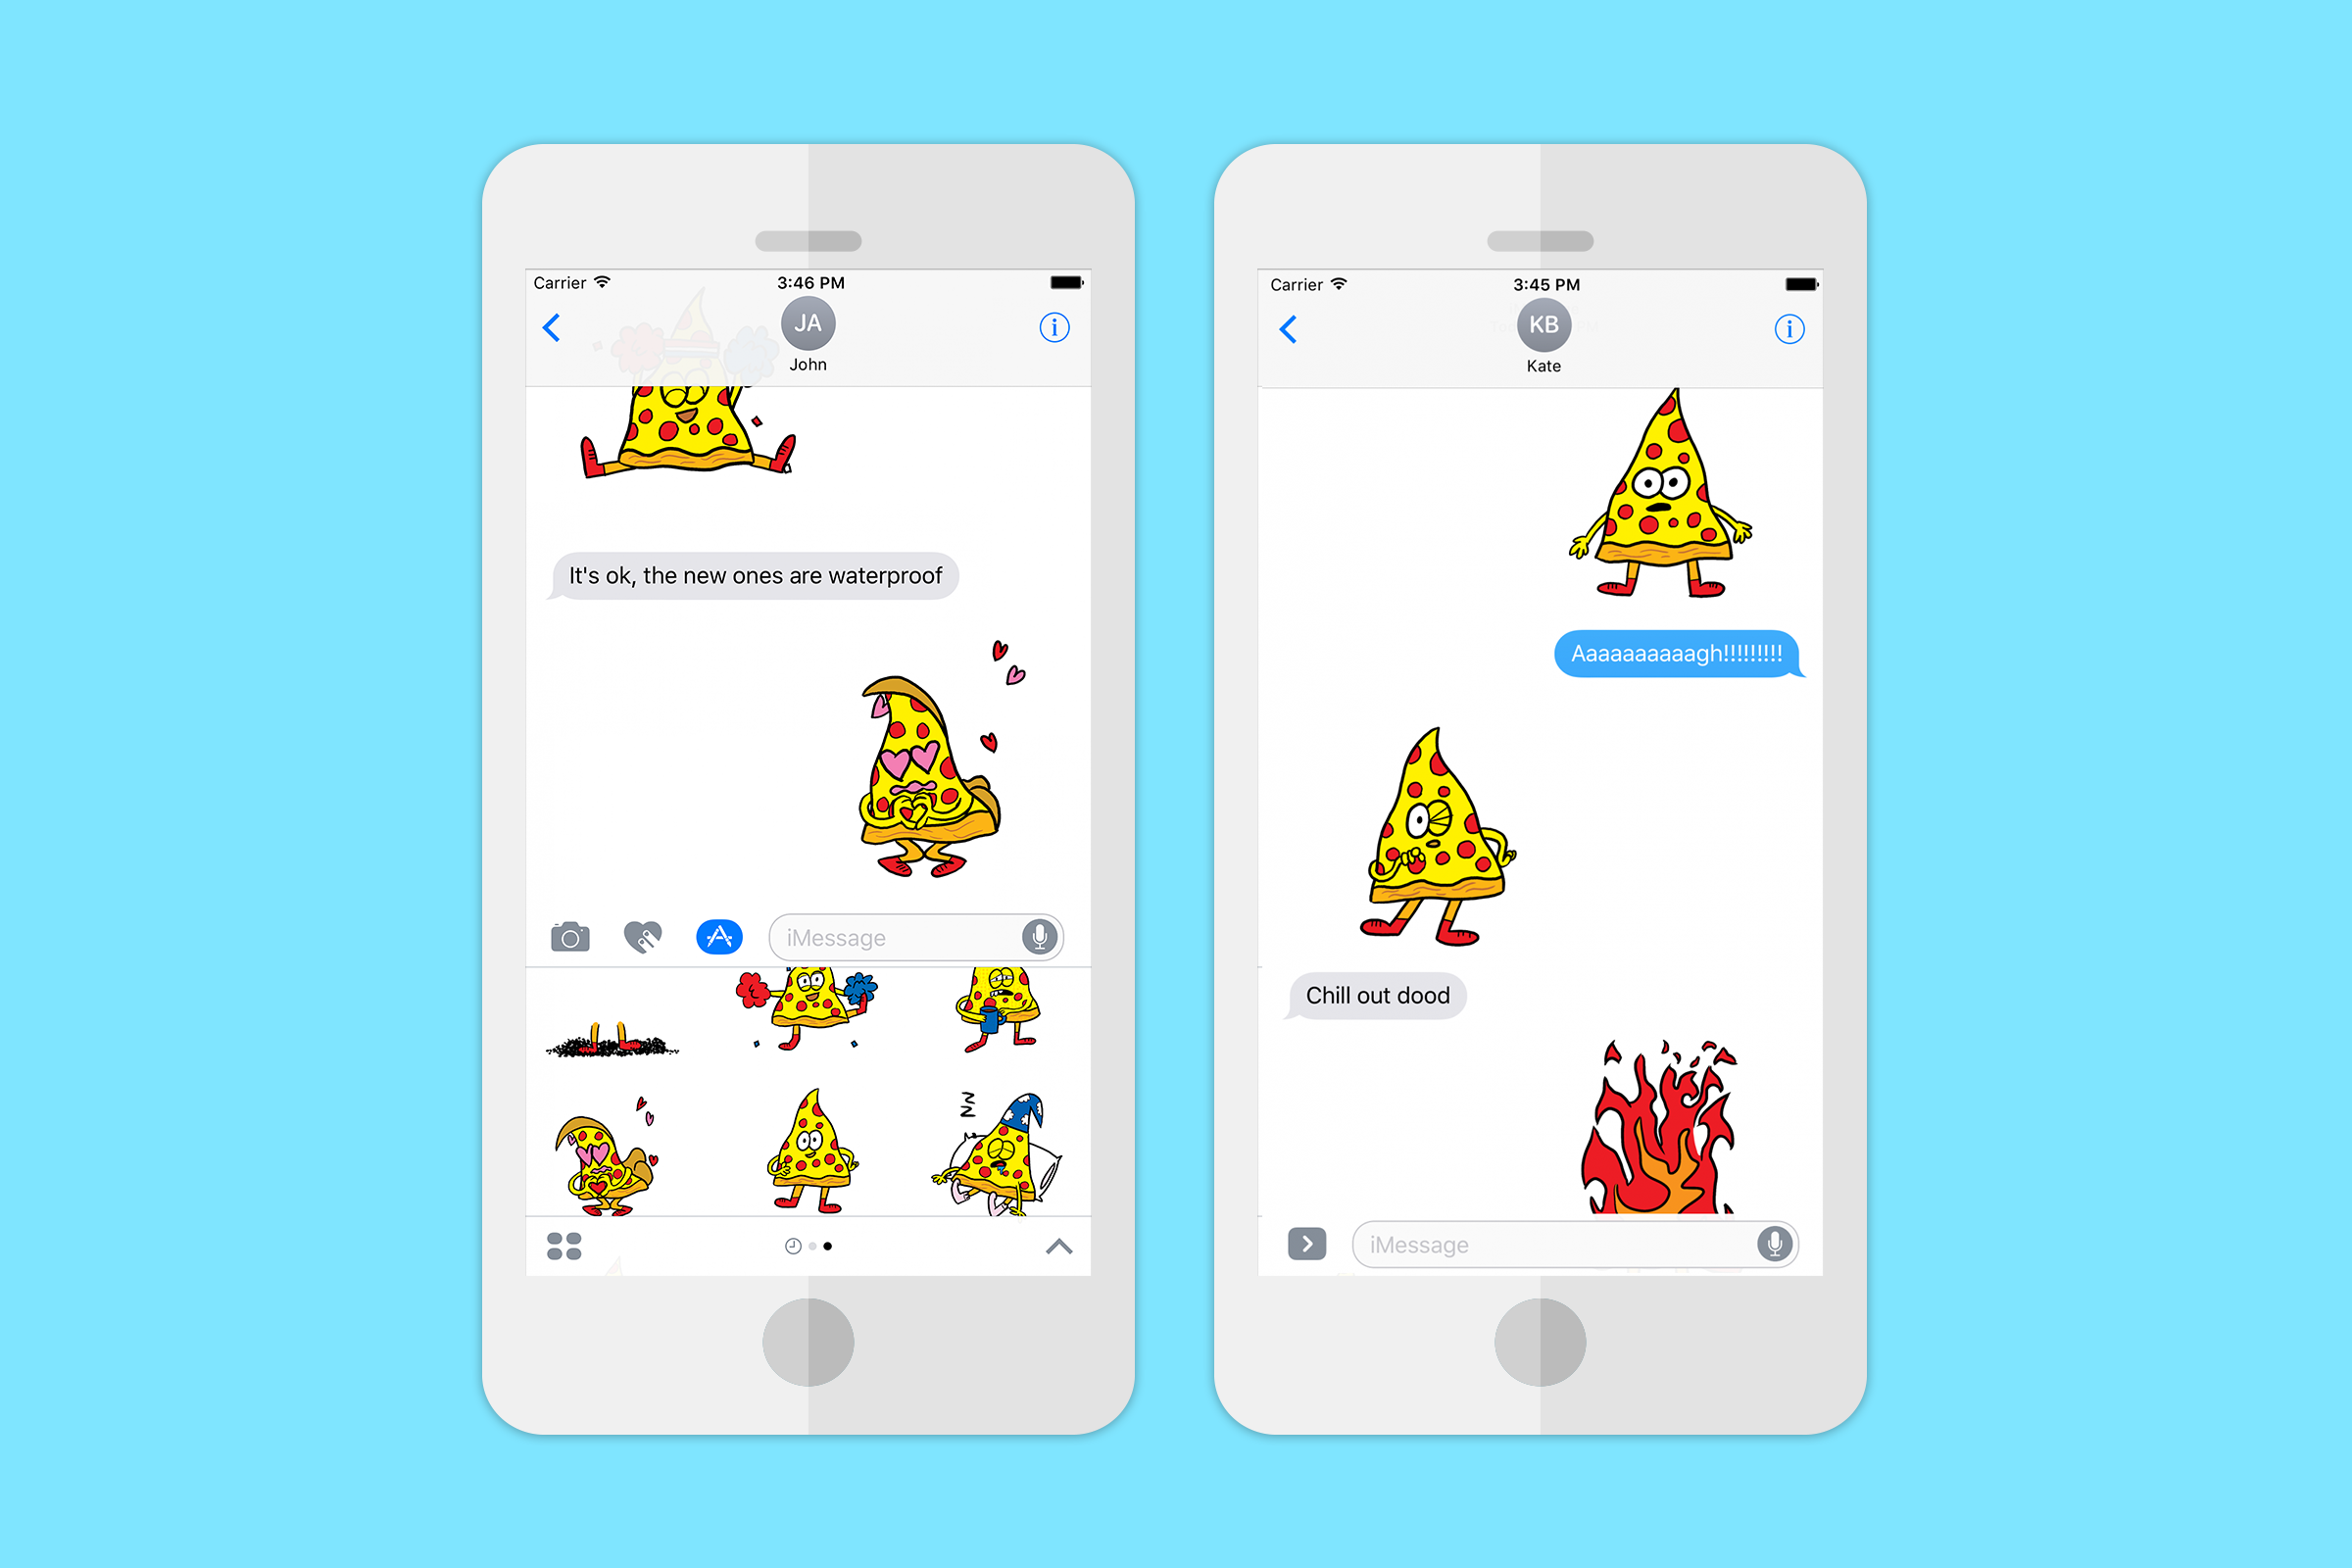 Jon Burgerman's free 'Pizza Friend' stickers in messaging